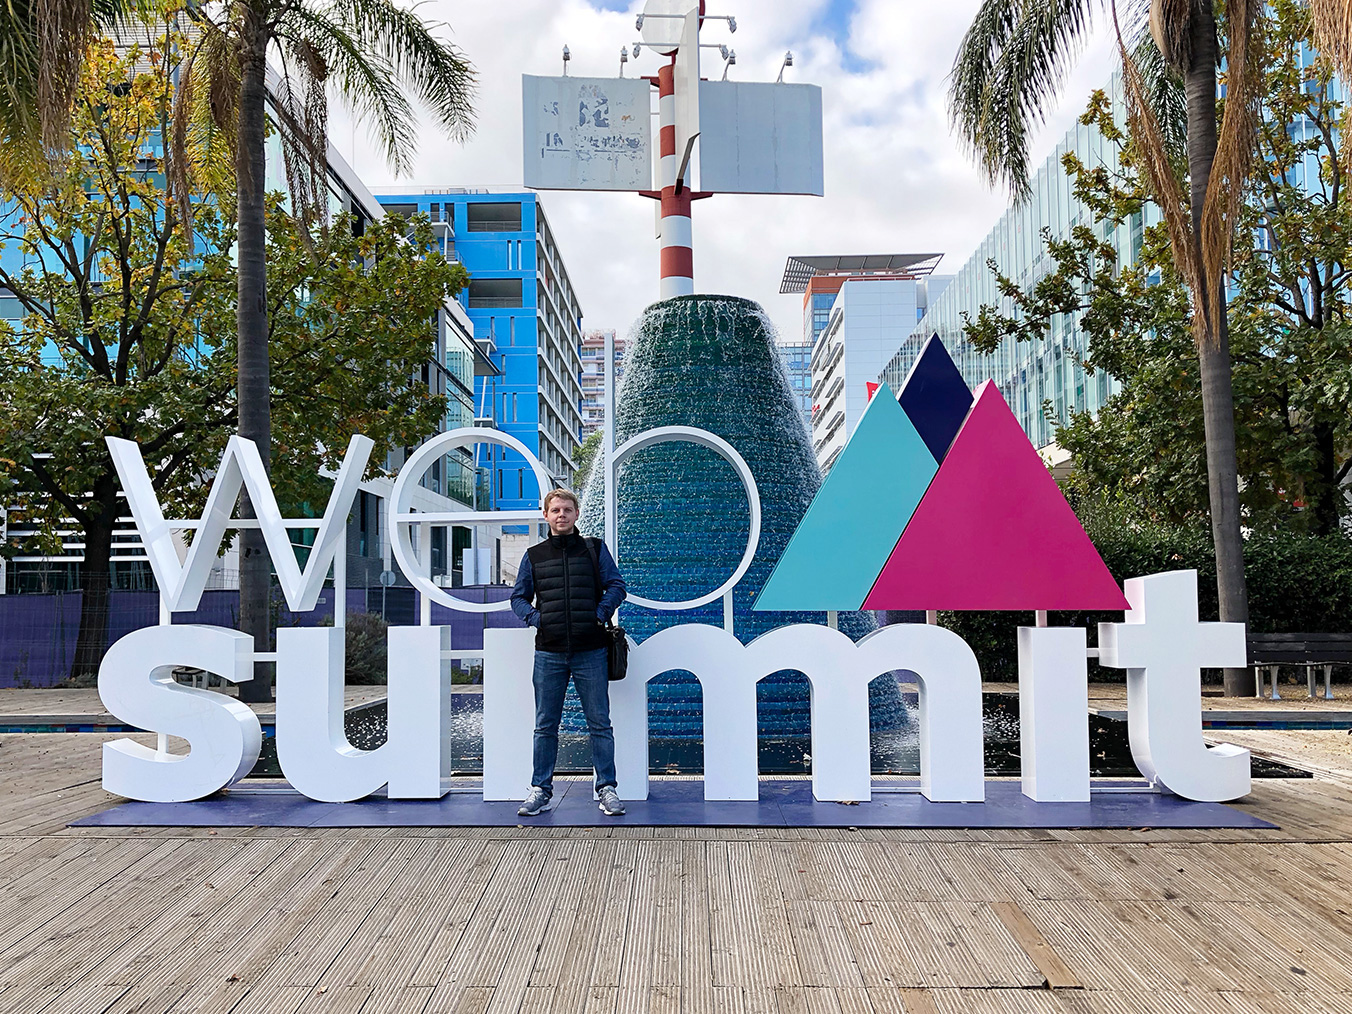 #WebSummit2018